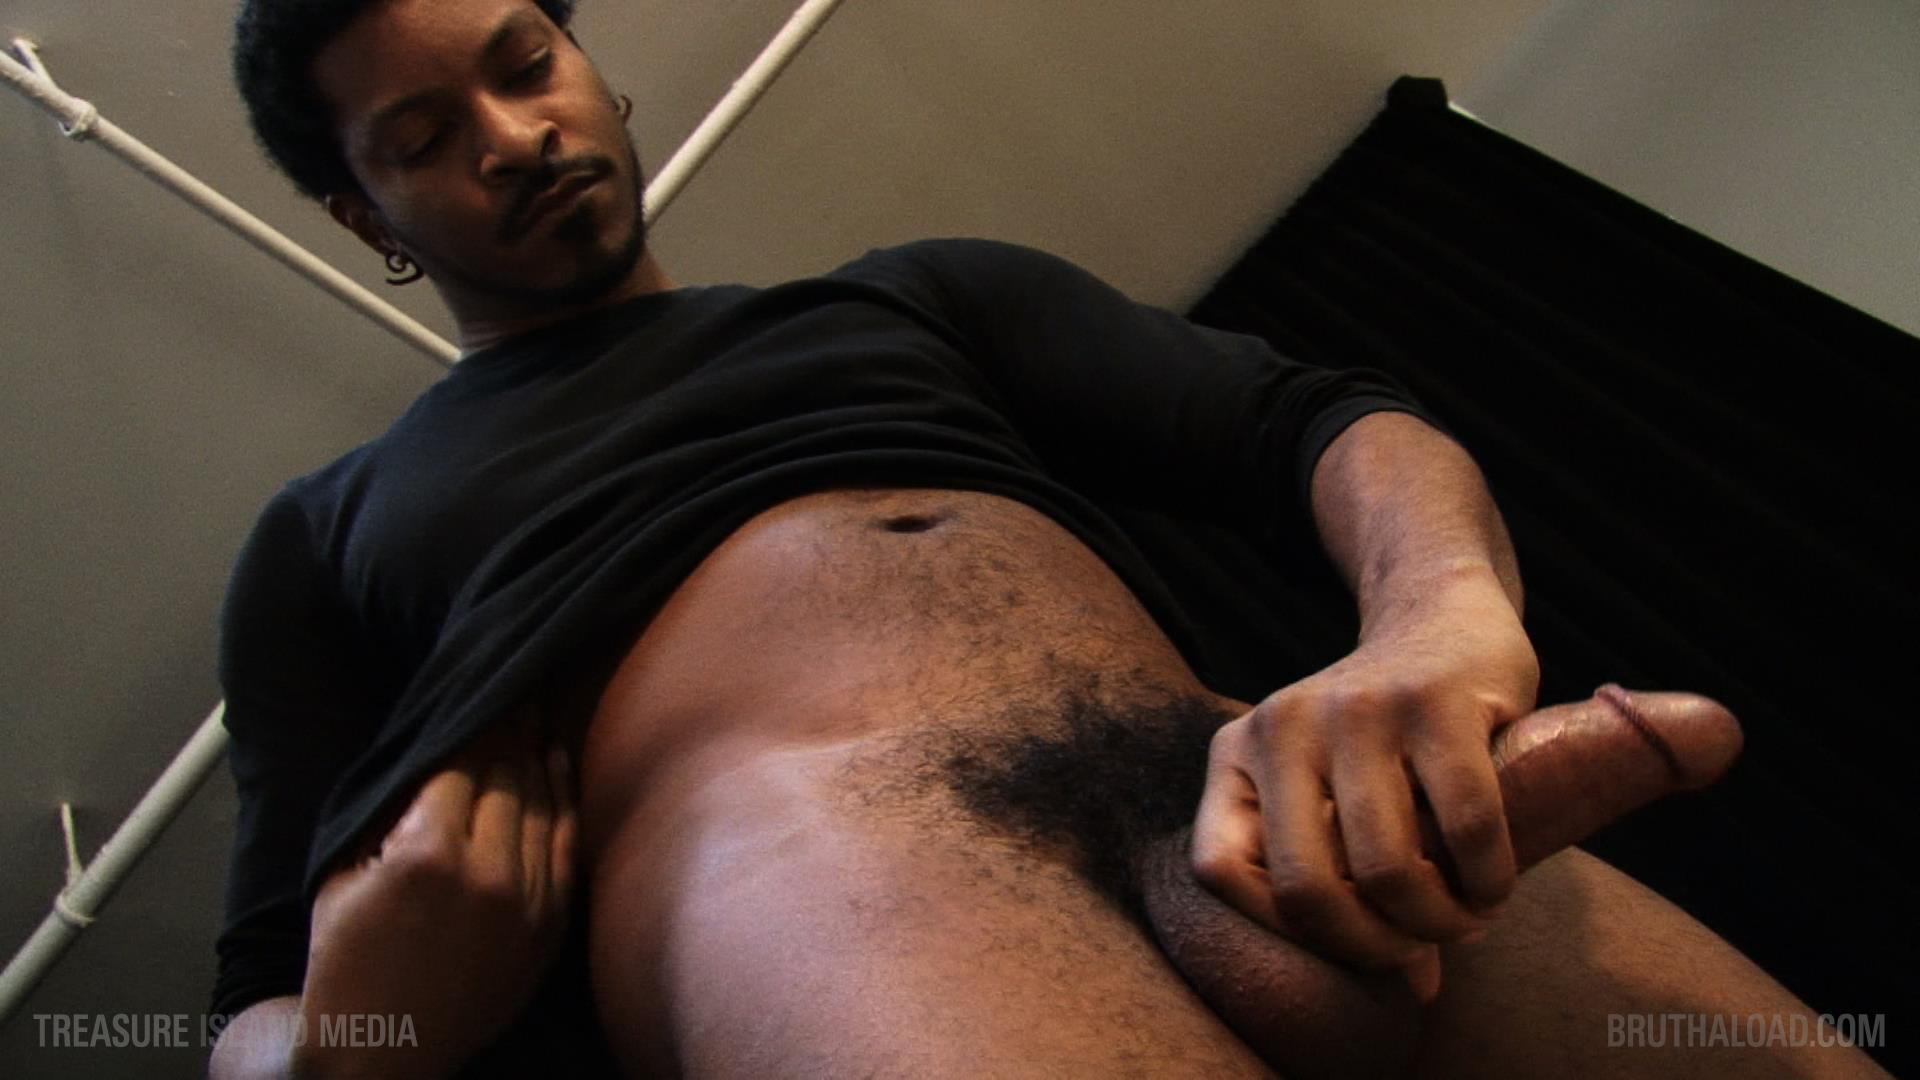 Treasure-Island-Media-Bruthaload-Devin-Masters-Big-Black-Uncut-Cock-07 Treasure Island Media's Bruthaload: Devin Masters Edging His Big Black Uncut Cock